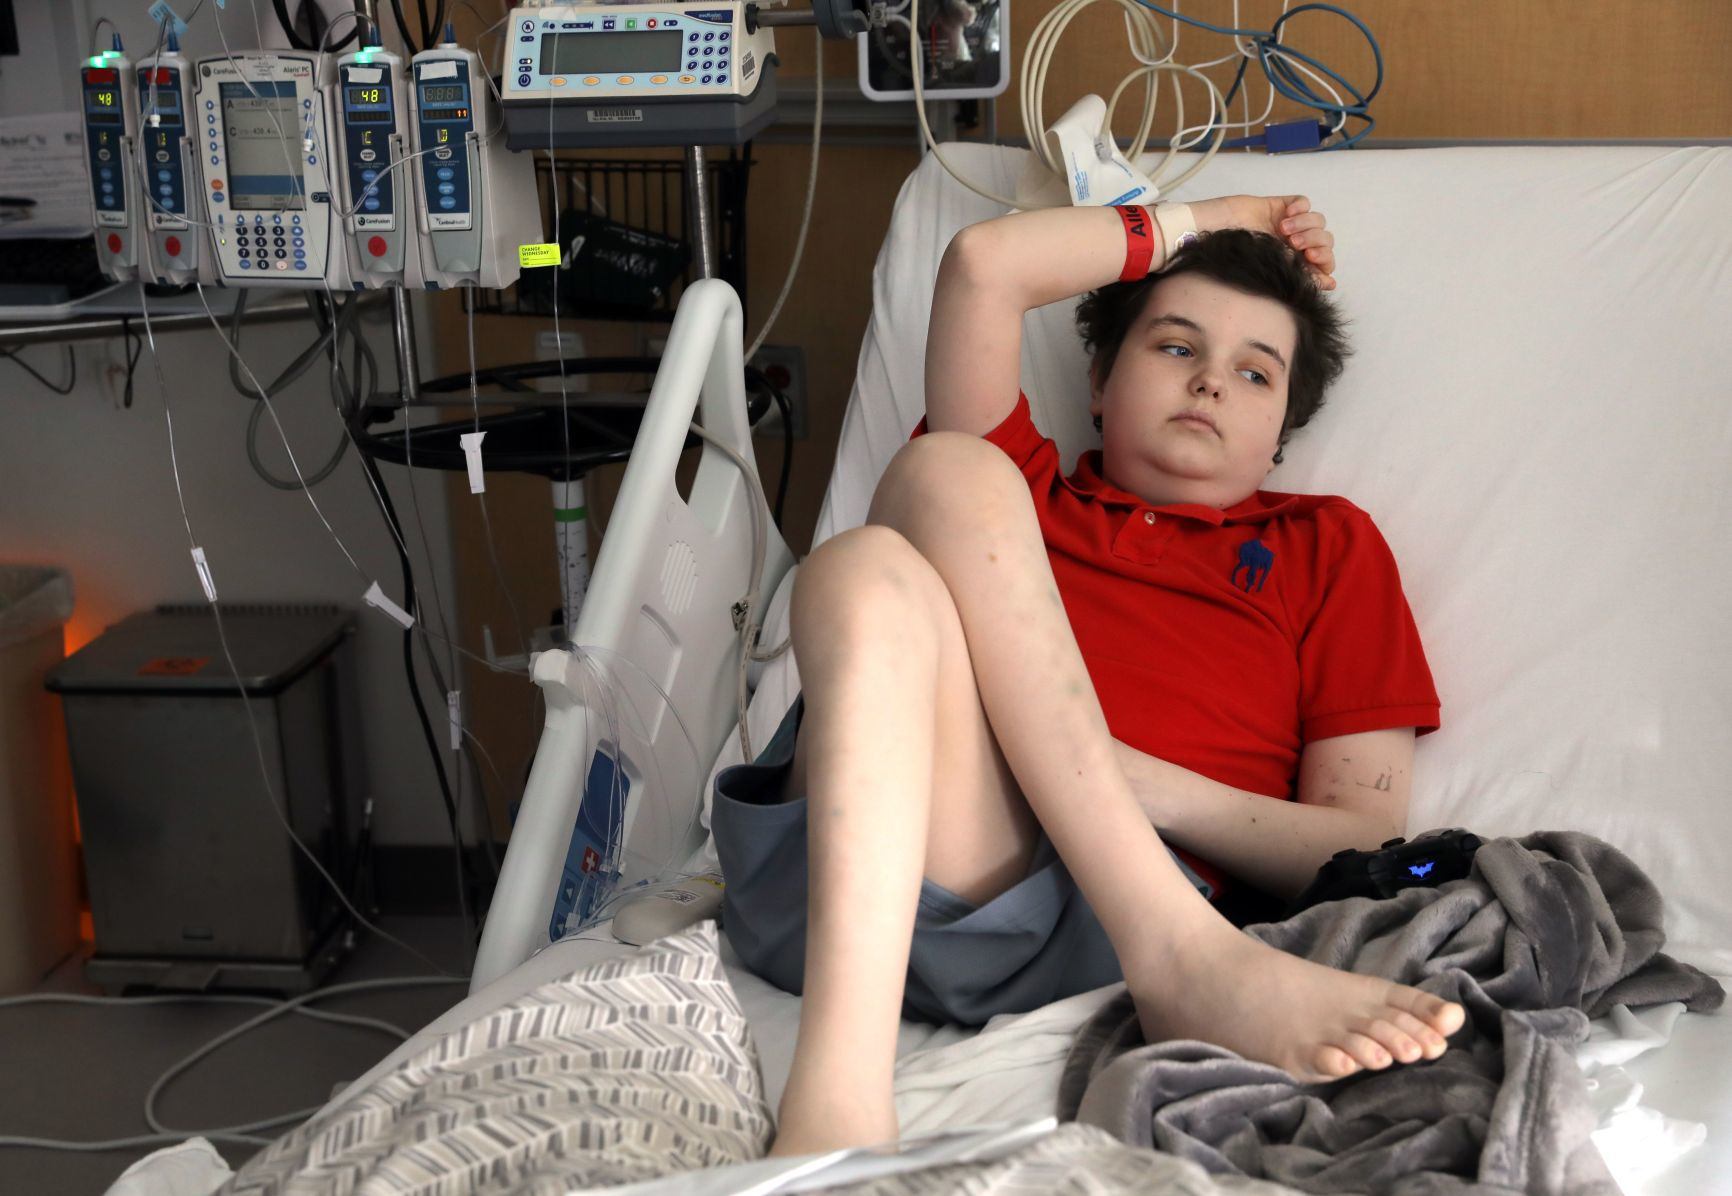 swansea boy, first in st louis to receive experimental leukemiajonathan cook, 12, of swansea, ill , relaxes in his hospital bed during an interview on tuesday , feb 27, 2018, at st louis children\u0027s hospital